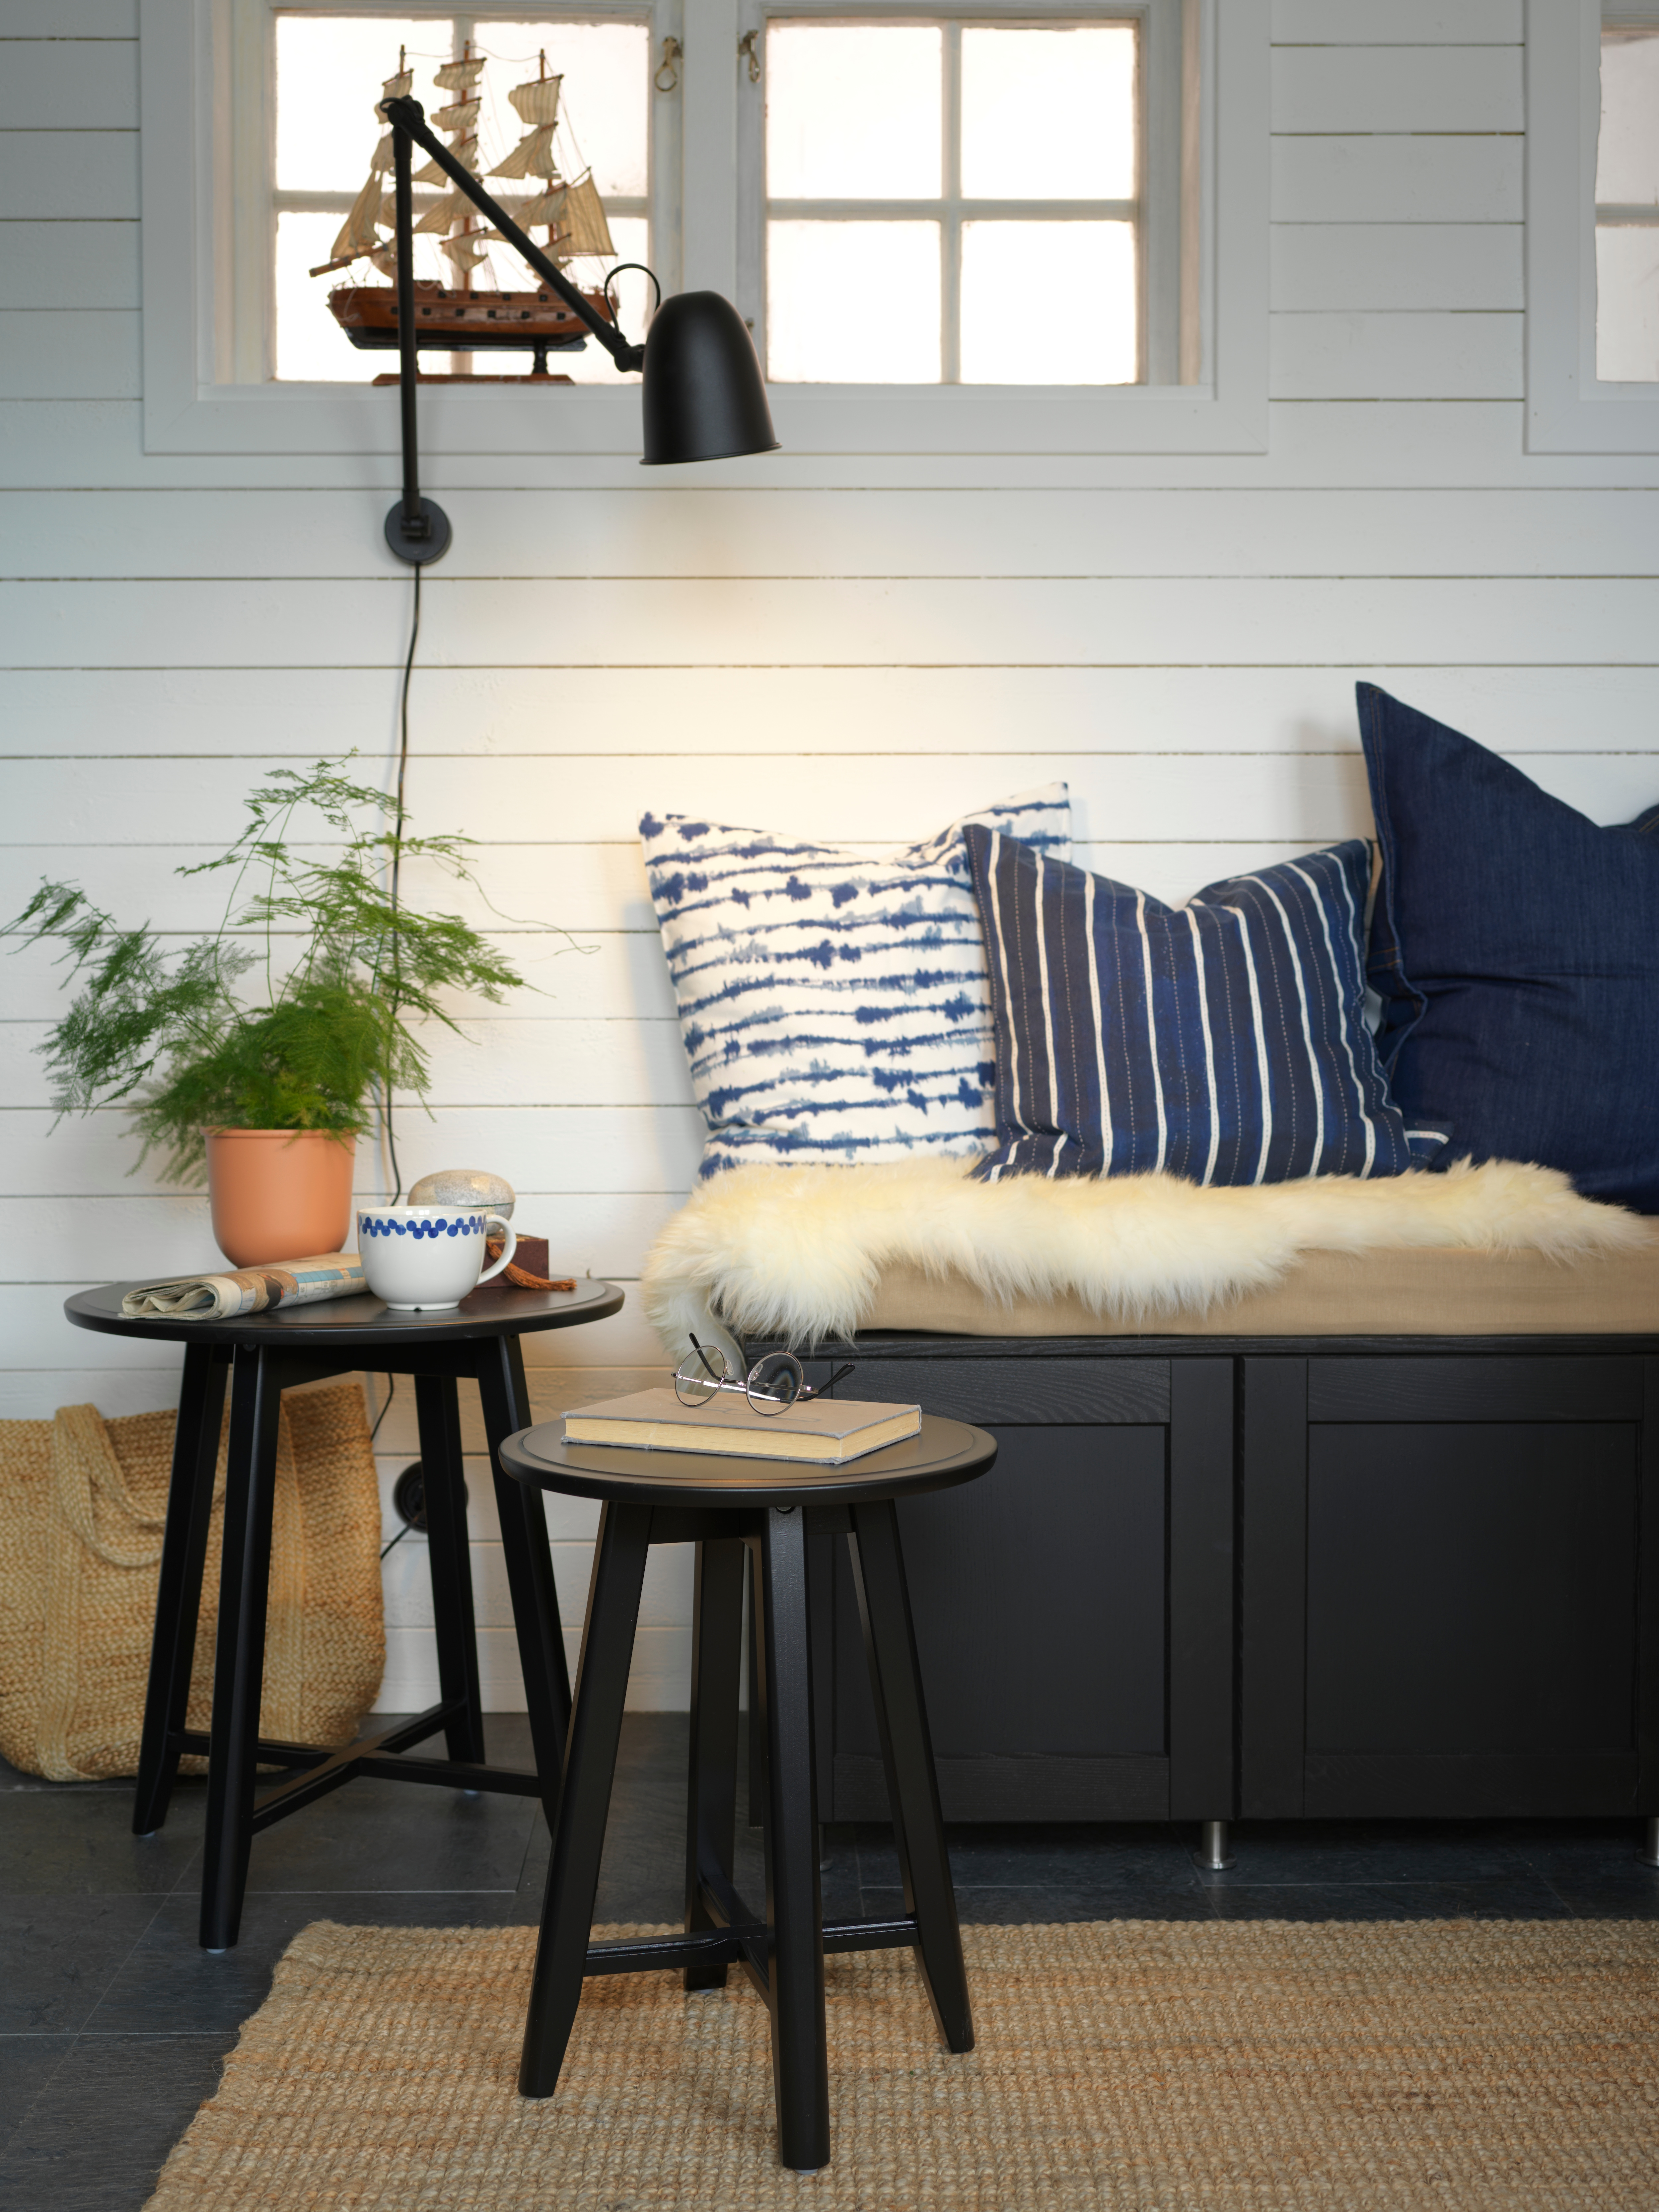 A wall with a lamp, bench and cushions by black KRAGSTA nest of tables holding a mug, potted plant, a book and eyeglasses.